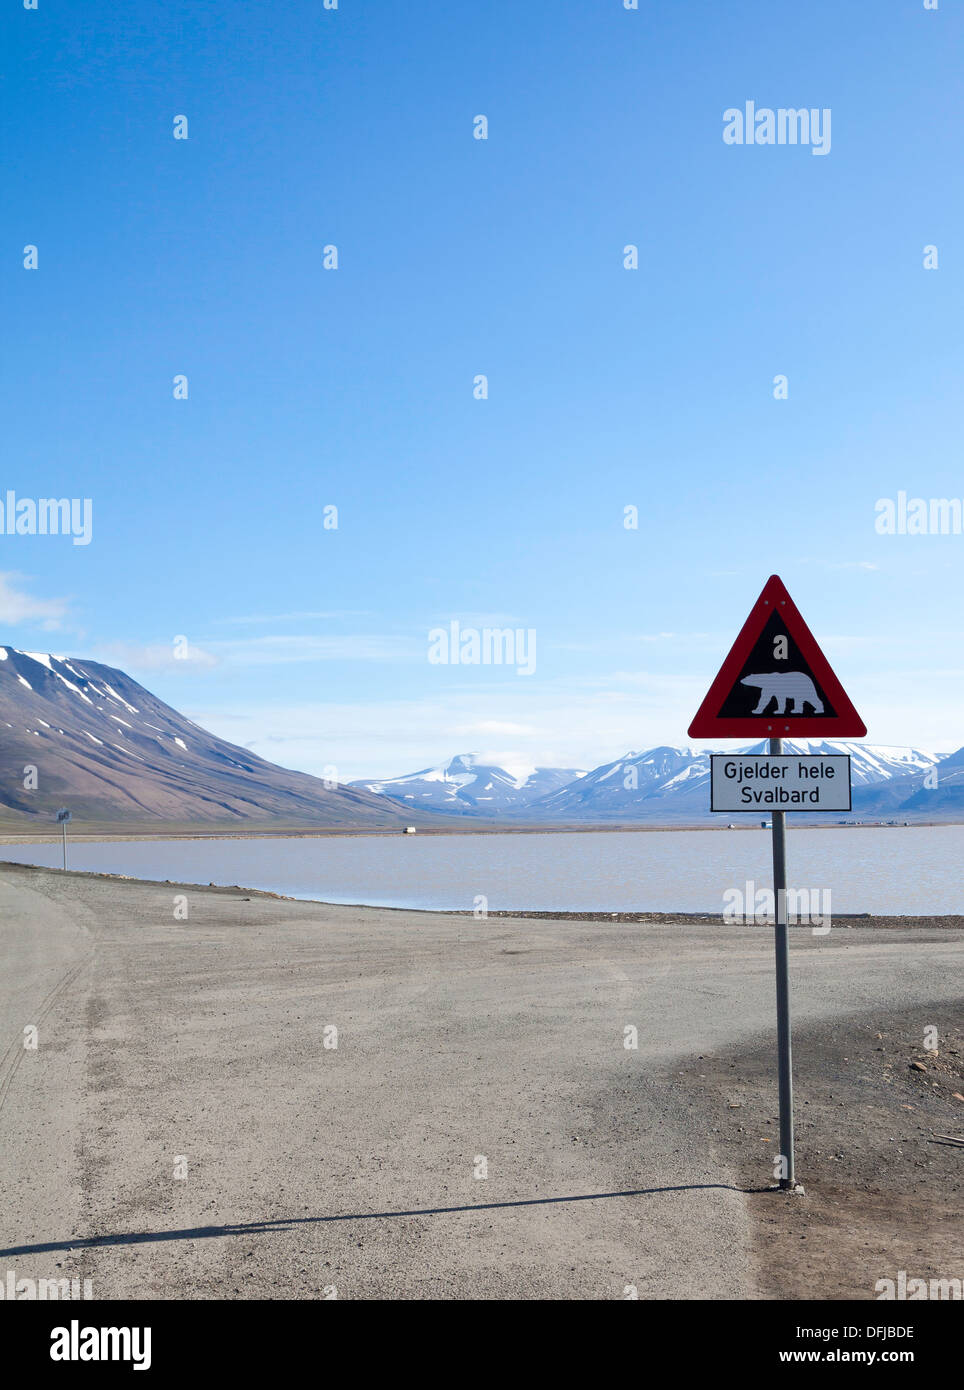 Polar bear roadsign on the road leading out of Longyearbyen, Spitsbergen, Noway - Stock Image